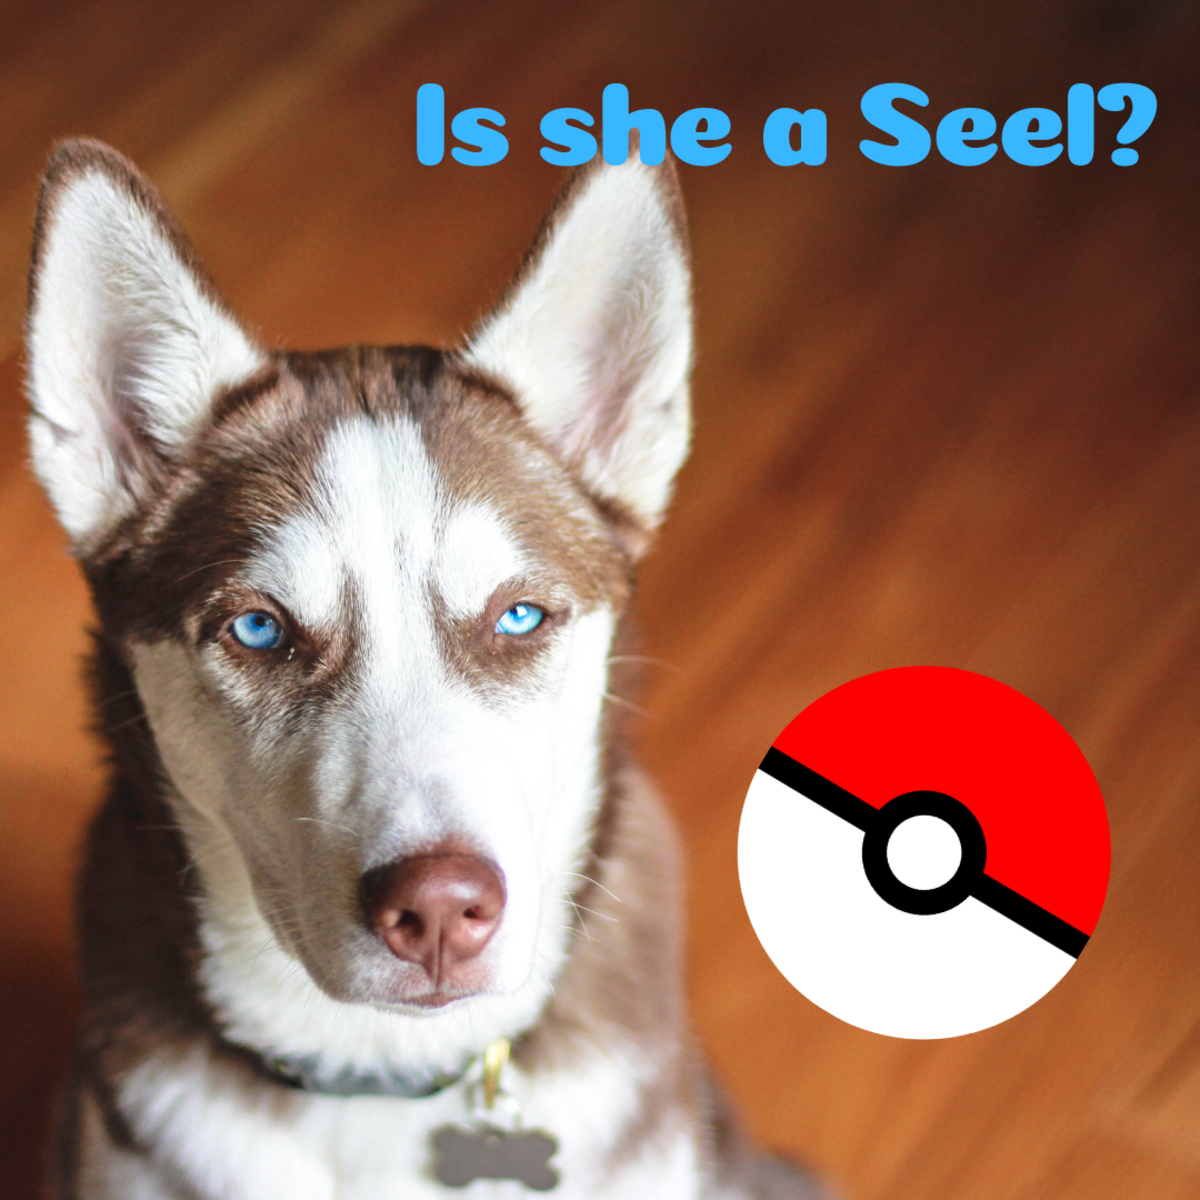 Is she a Seel?